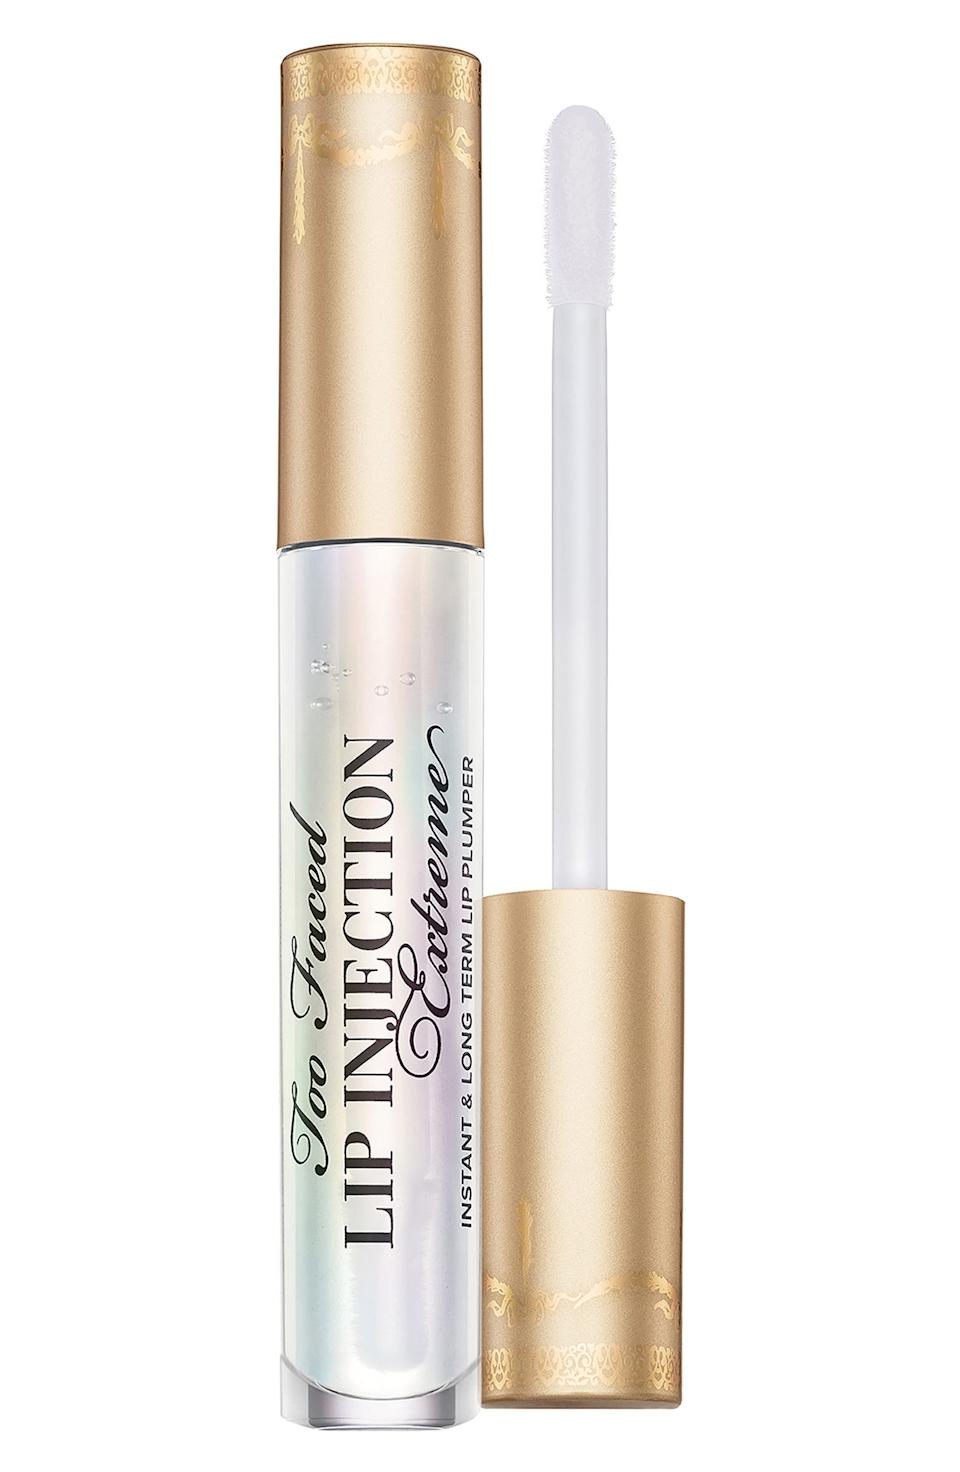 Lip Injection Extreme Lip Plumper by Too Faced is on sale at Nordstrom, from $14 (originally $16).